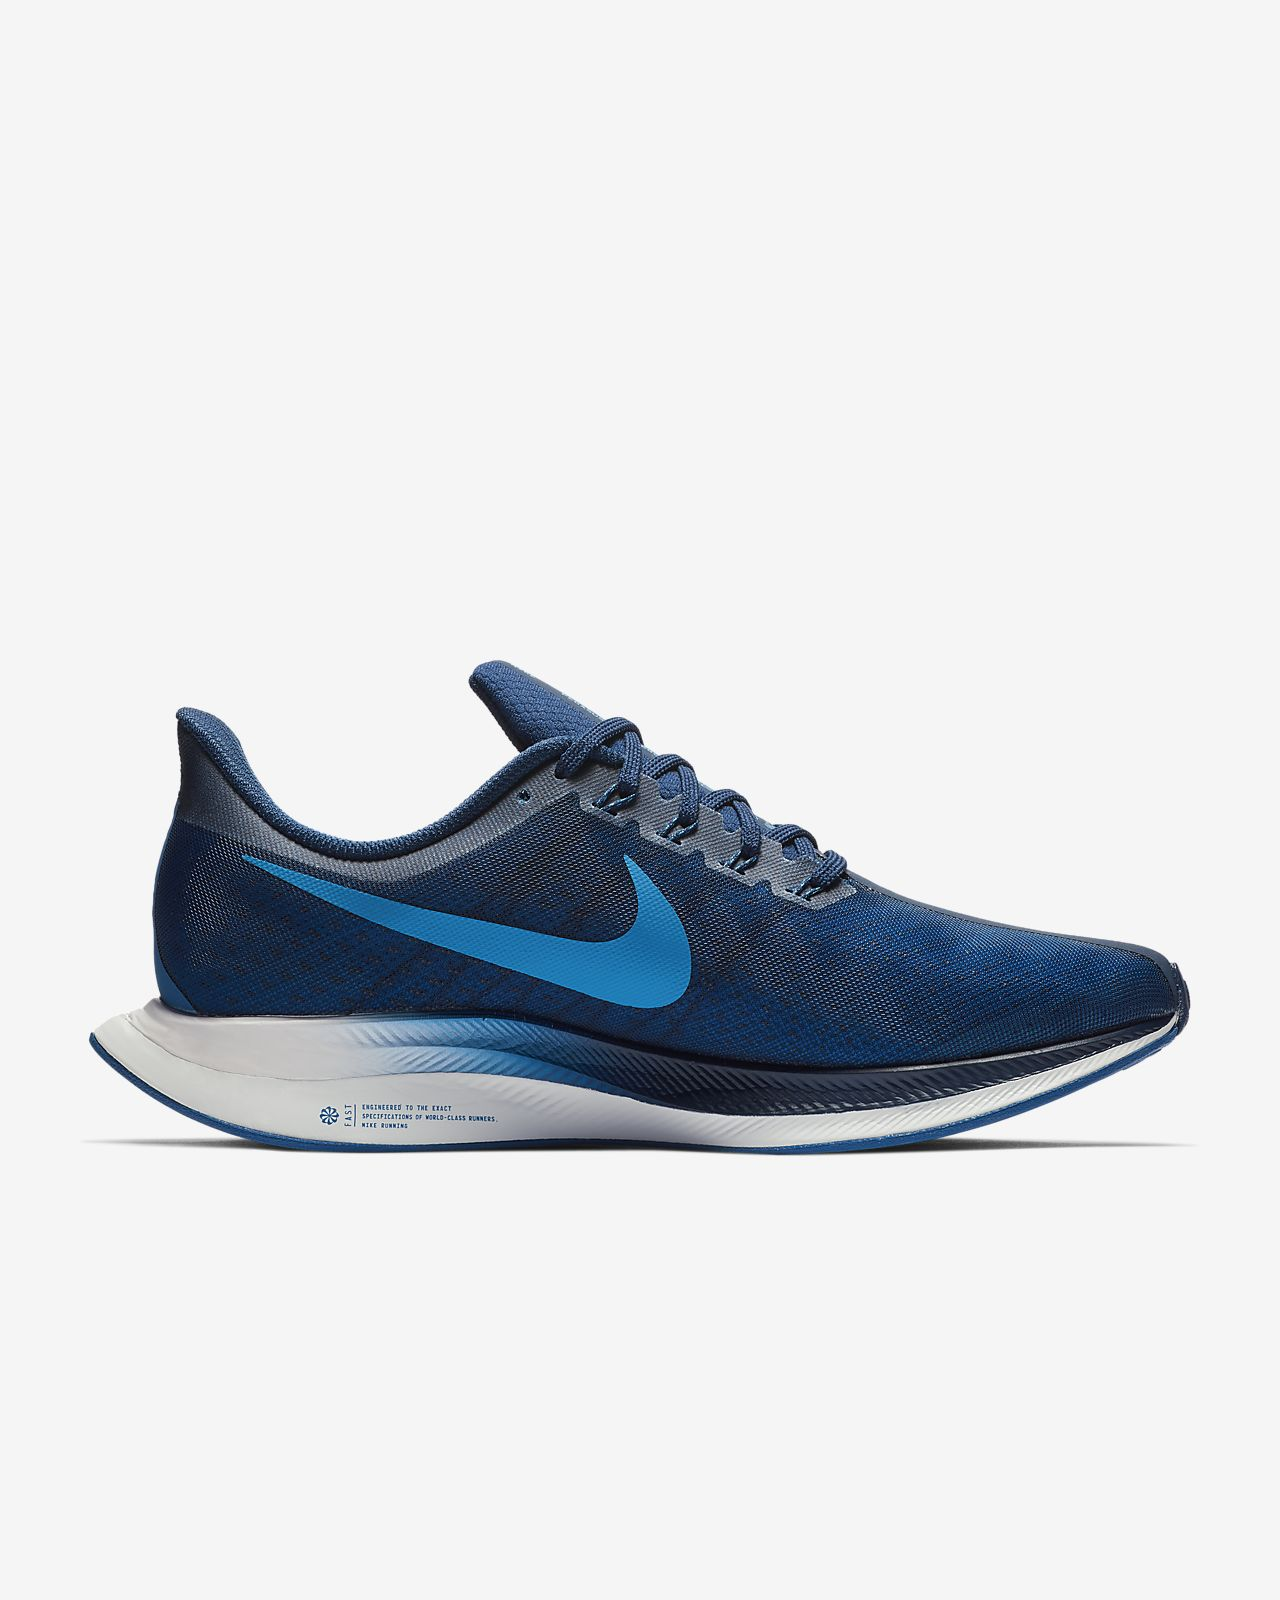 f6de86d5ad6a1 Nike Zoom Pegasus Turbo Men s Running Shoe. Nike.com IN